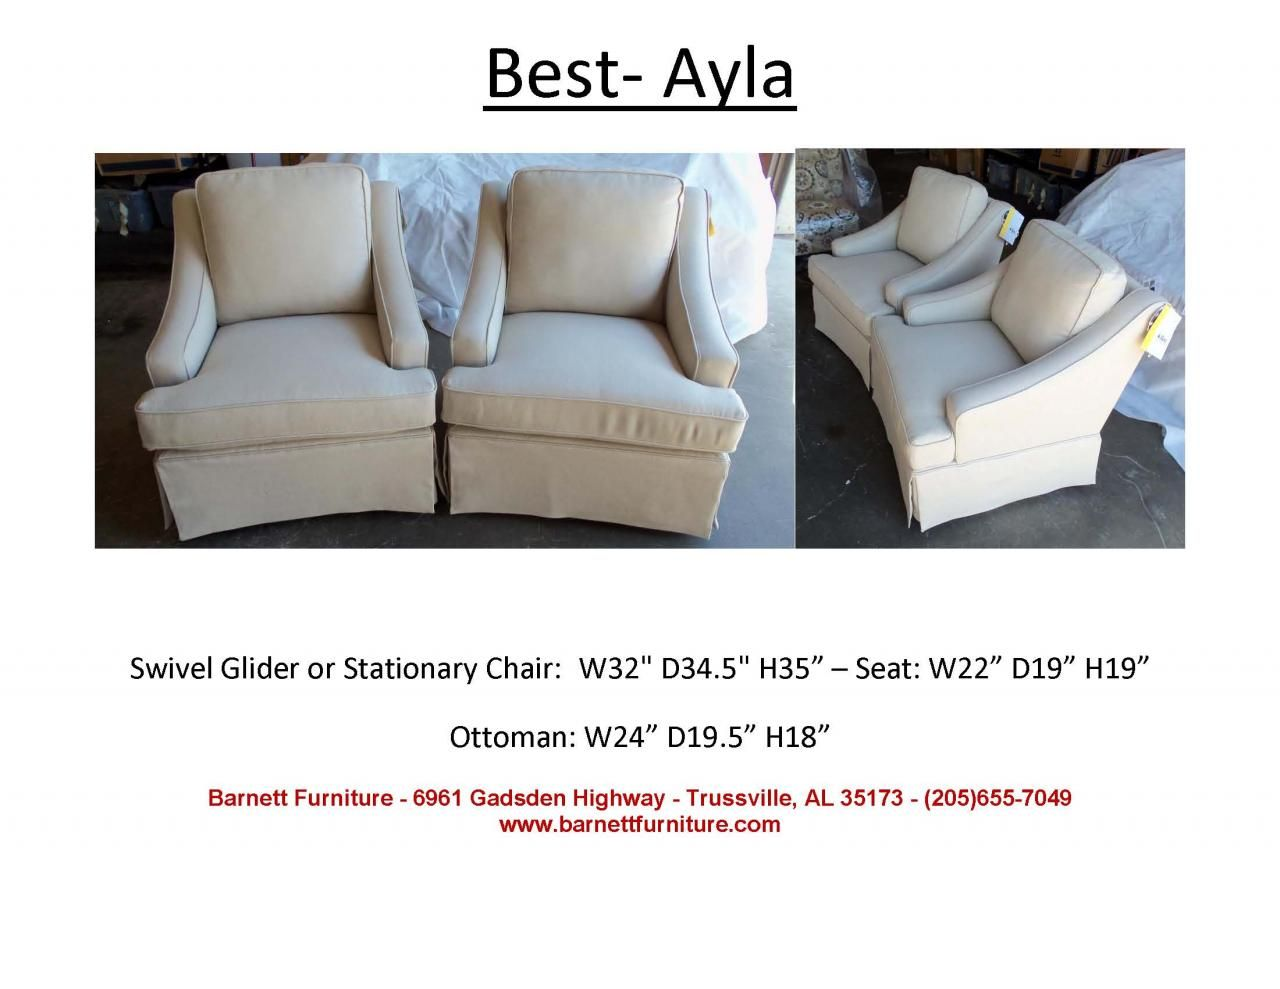 Best Ayla Chair. Swivel or Stationary - you choose the fabric ...